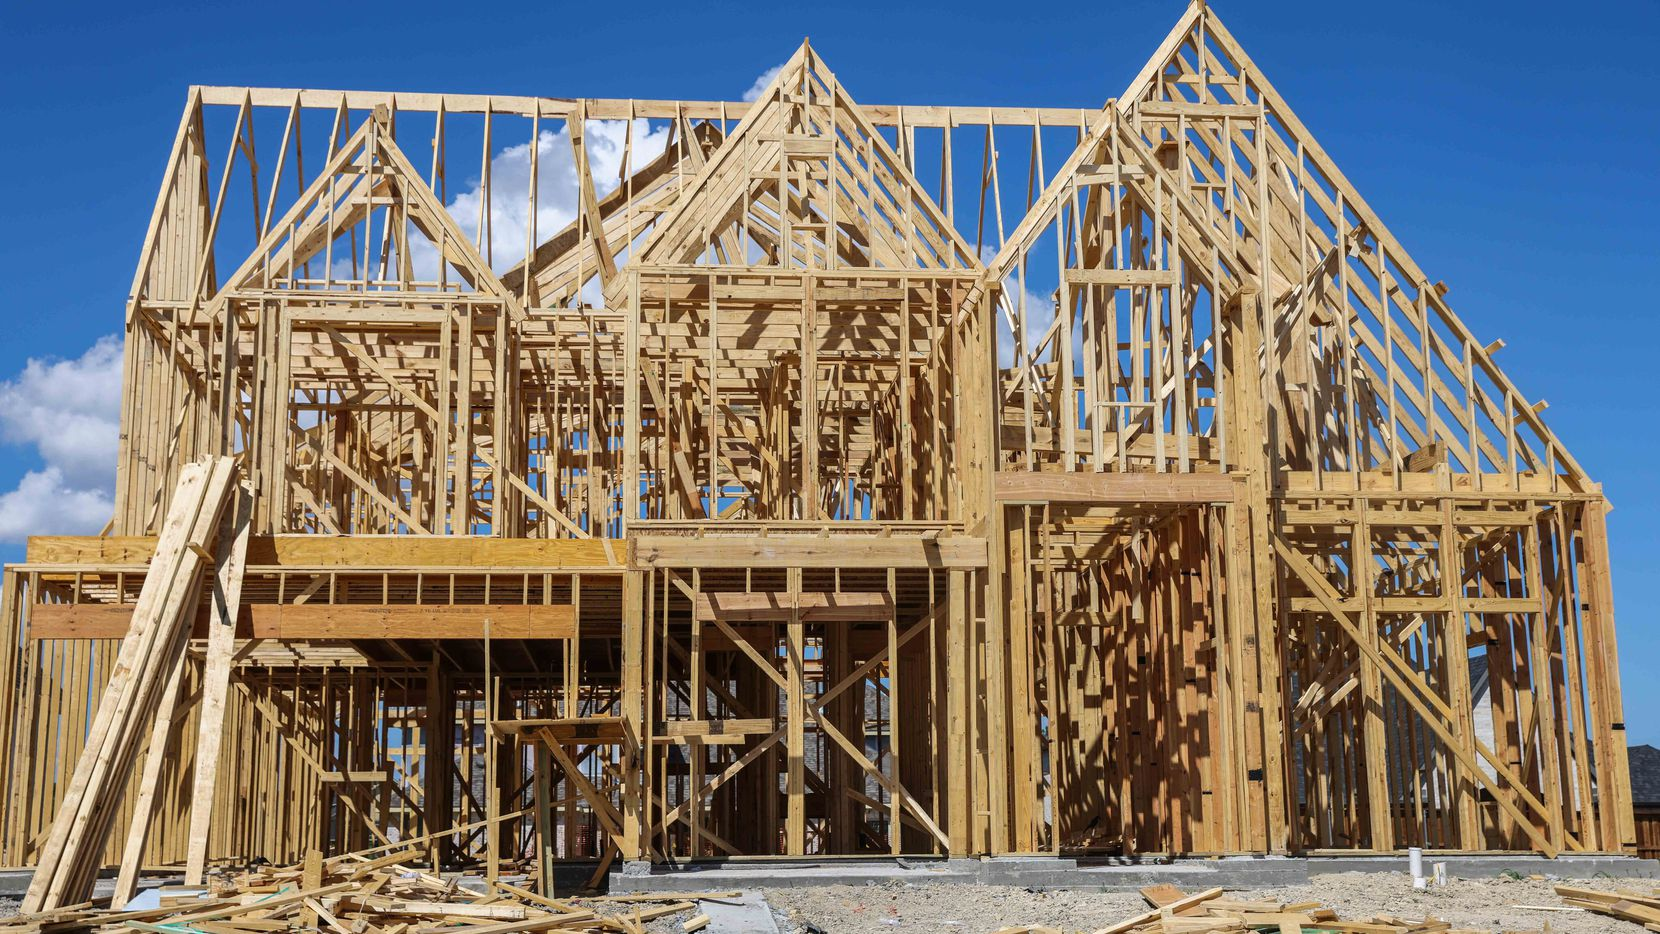 North Texas home construction isn't keeping up with population growth.